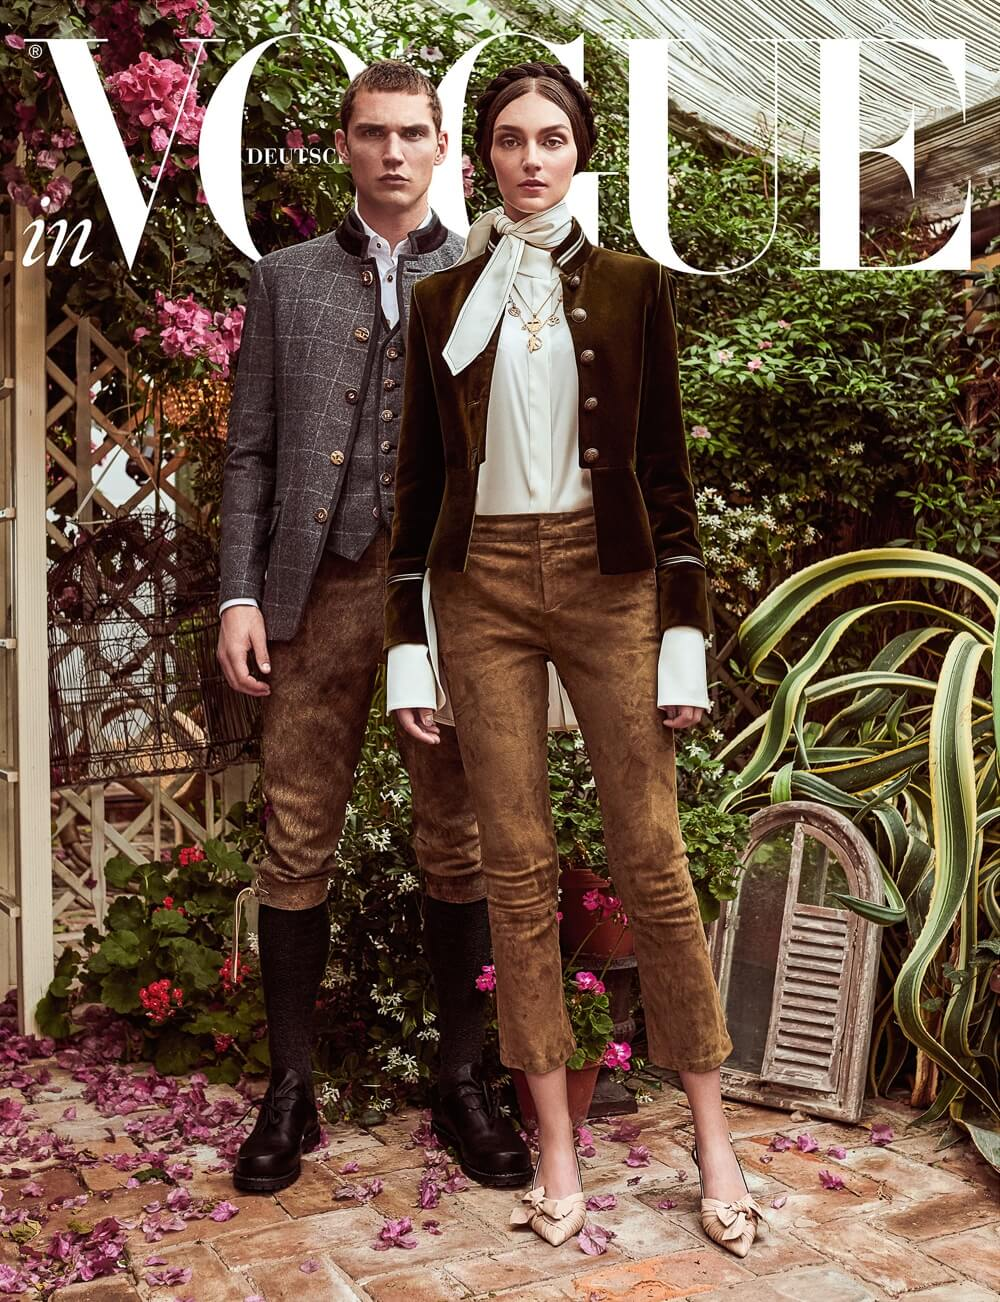 Vogue-Germany-August-2018-Deimante-Misiunaite-Andreas-Ortner-8